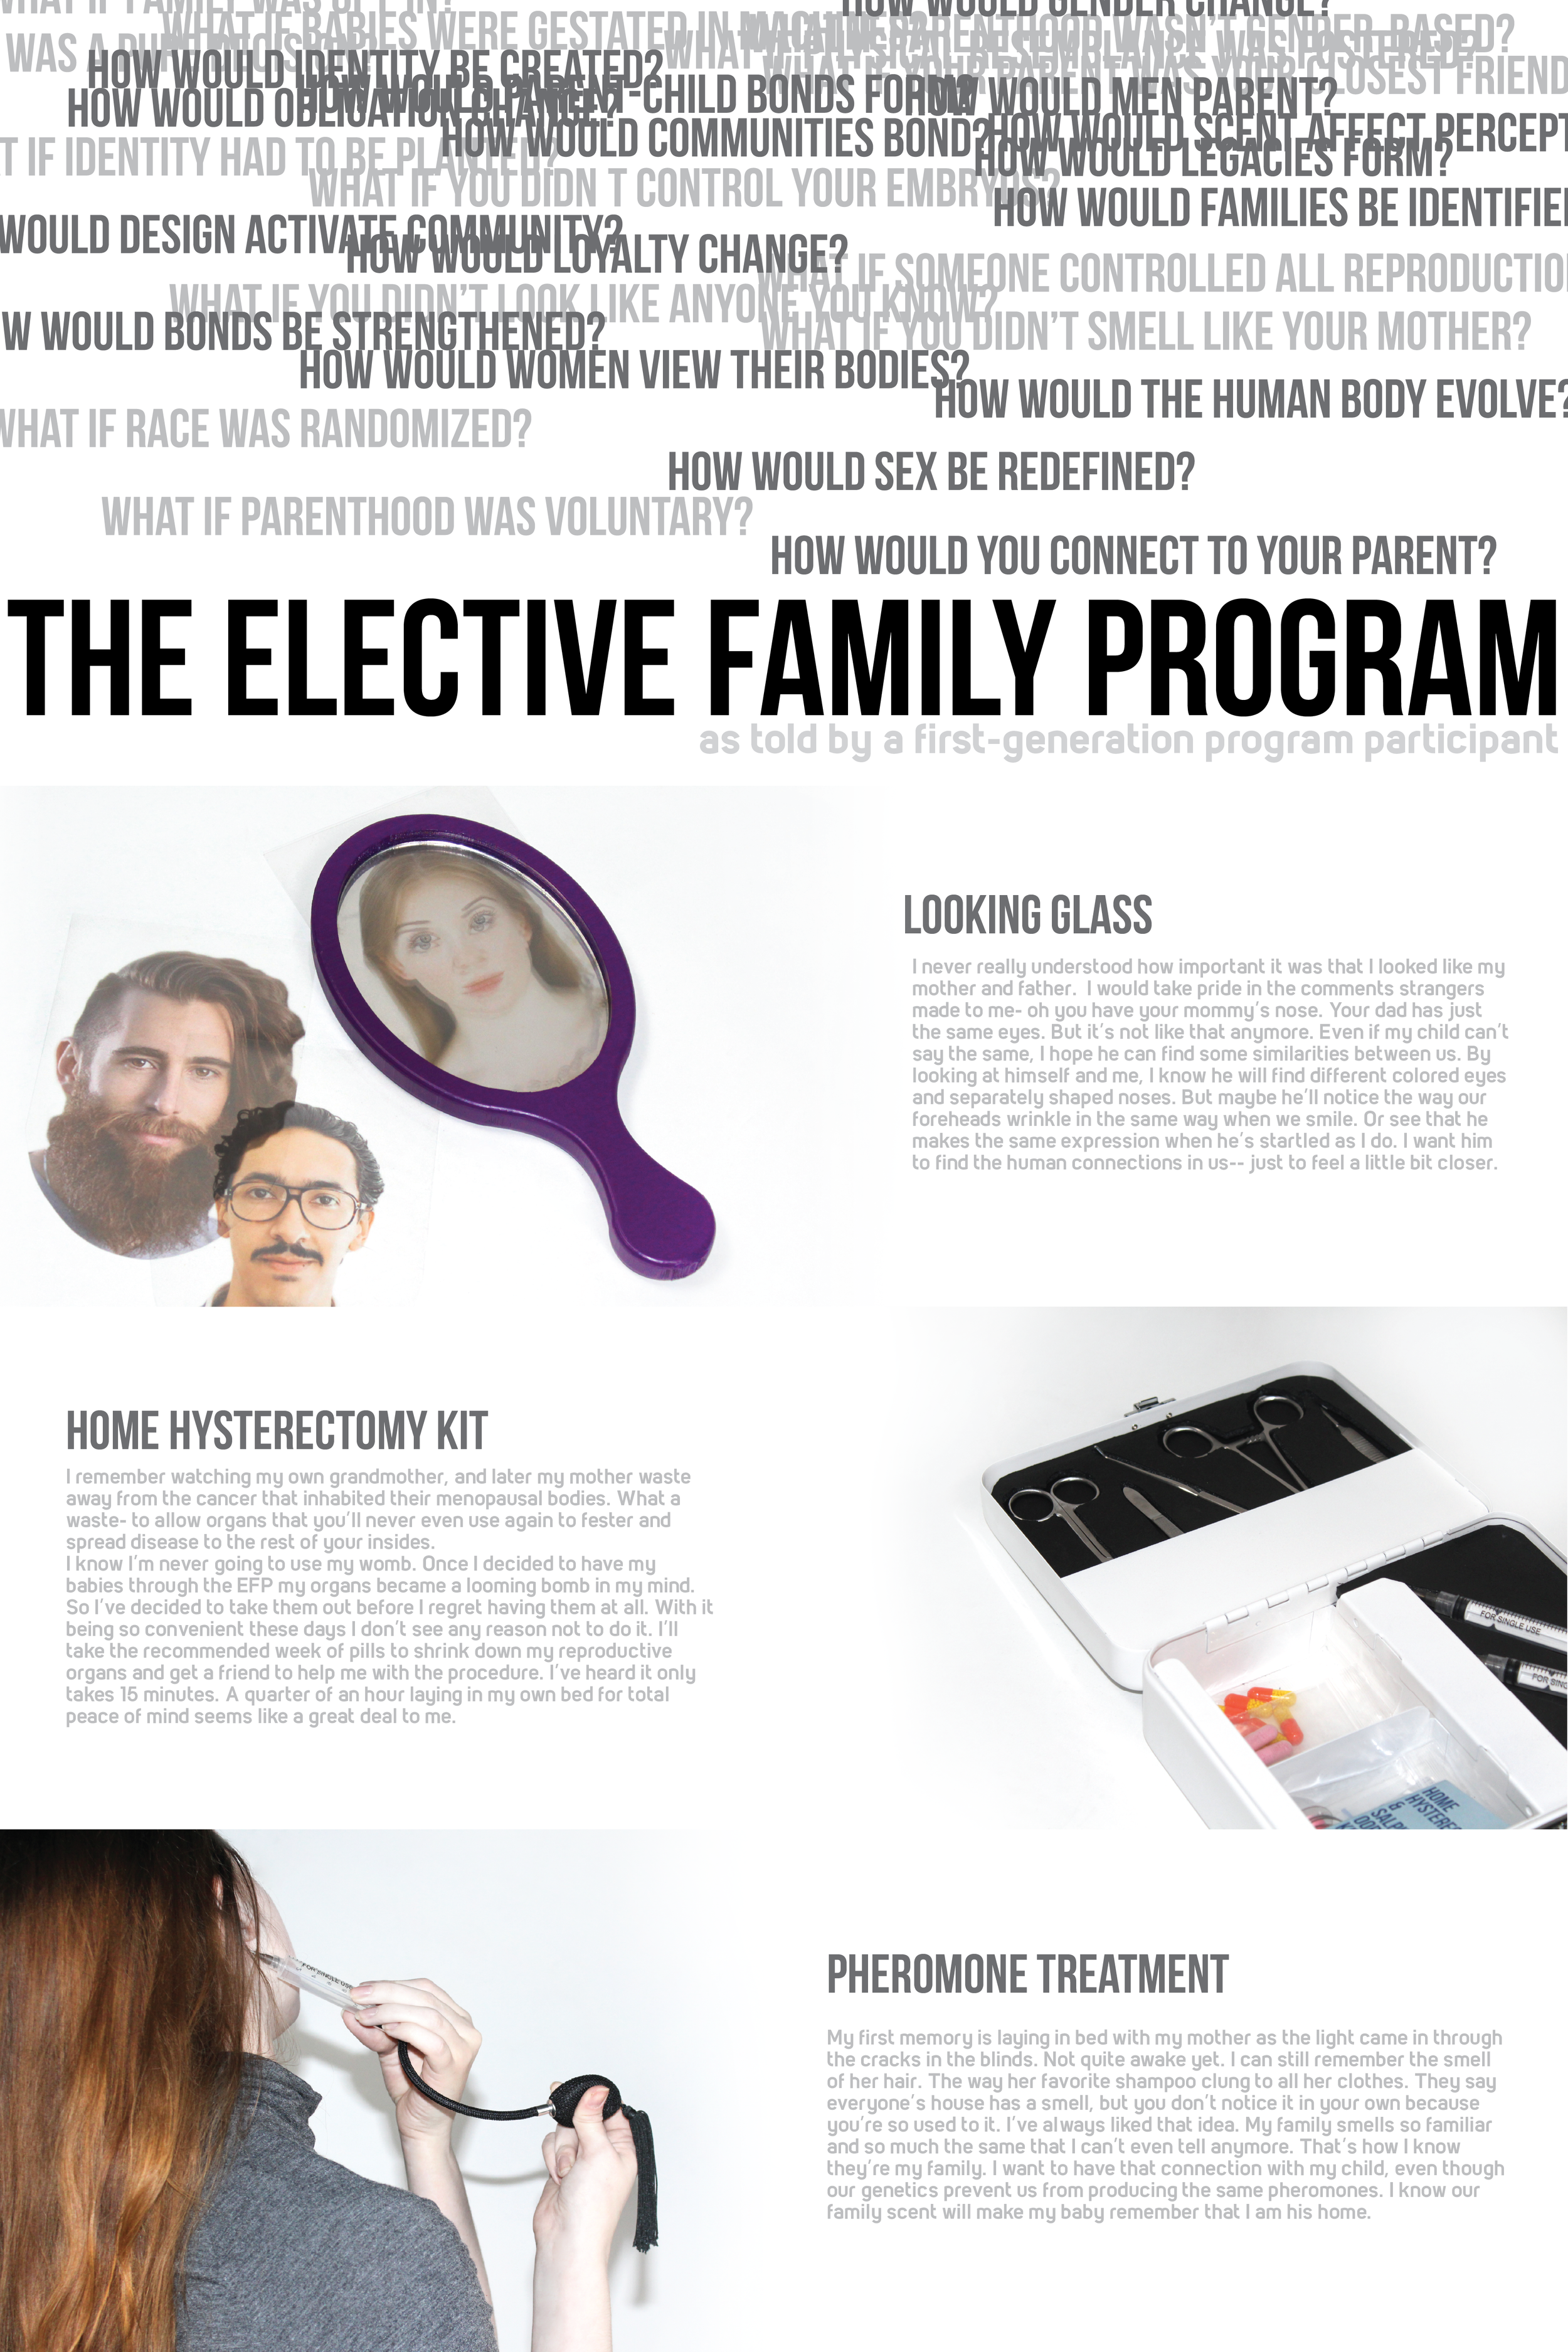 The Elective Family Program   Gabrielle Stichweh  This project speculates a future in which family structure has been even further redefined. The American government institutes the Elective Family Program. Under this system, adults may choose to commission a child who would be grown for them in electronic wombs.